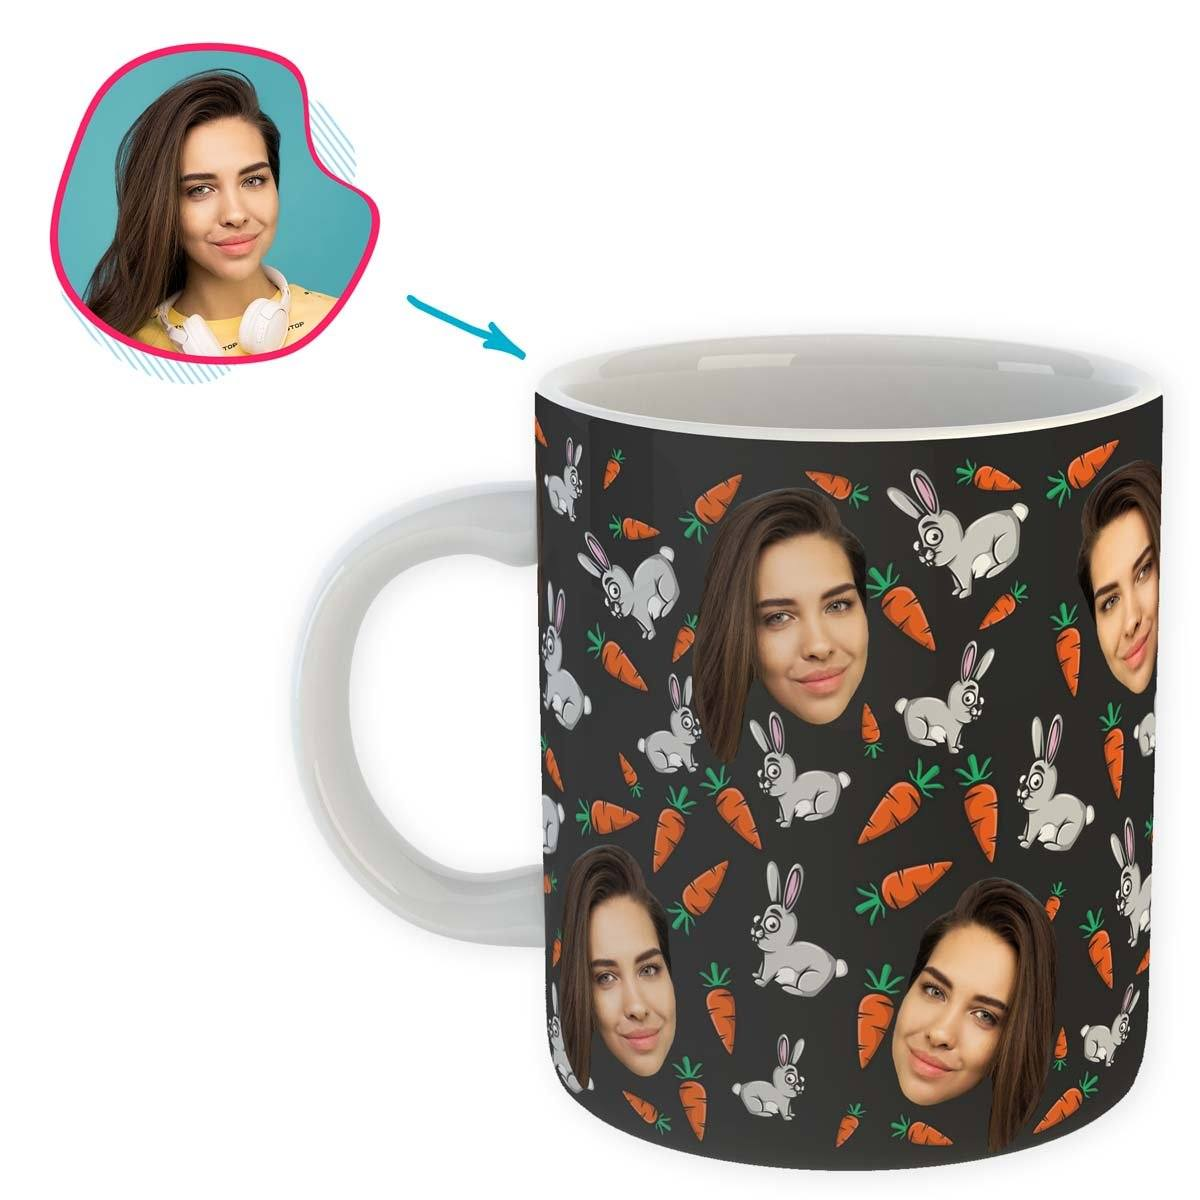 dark Bunny mug personalized with photo of face printed on it